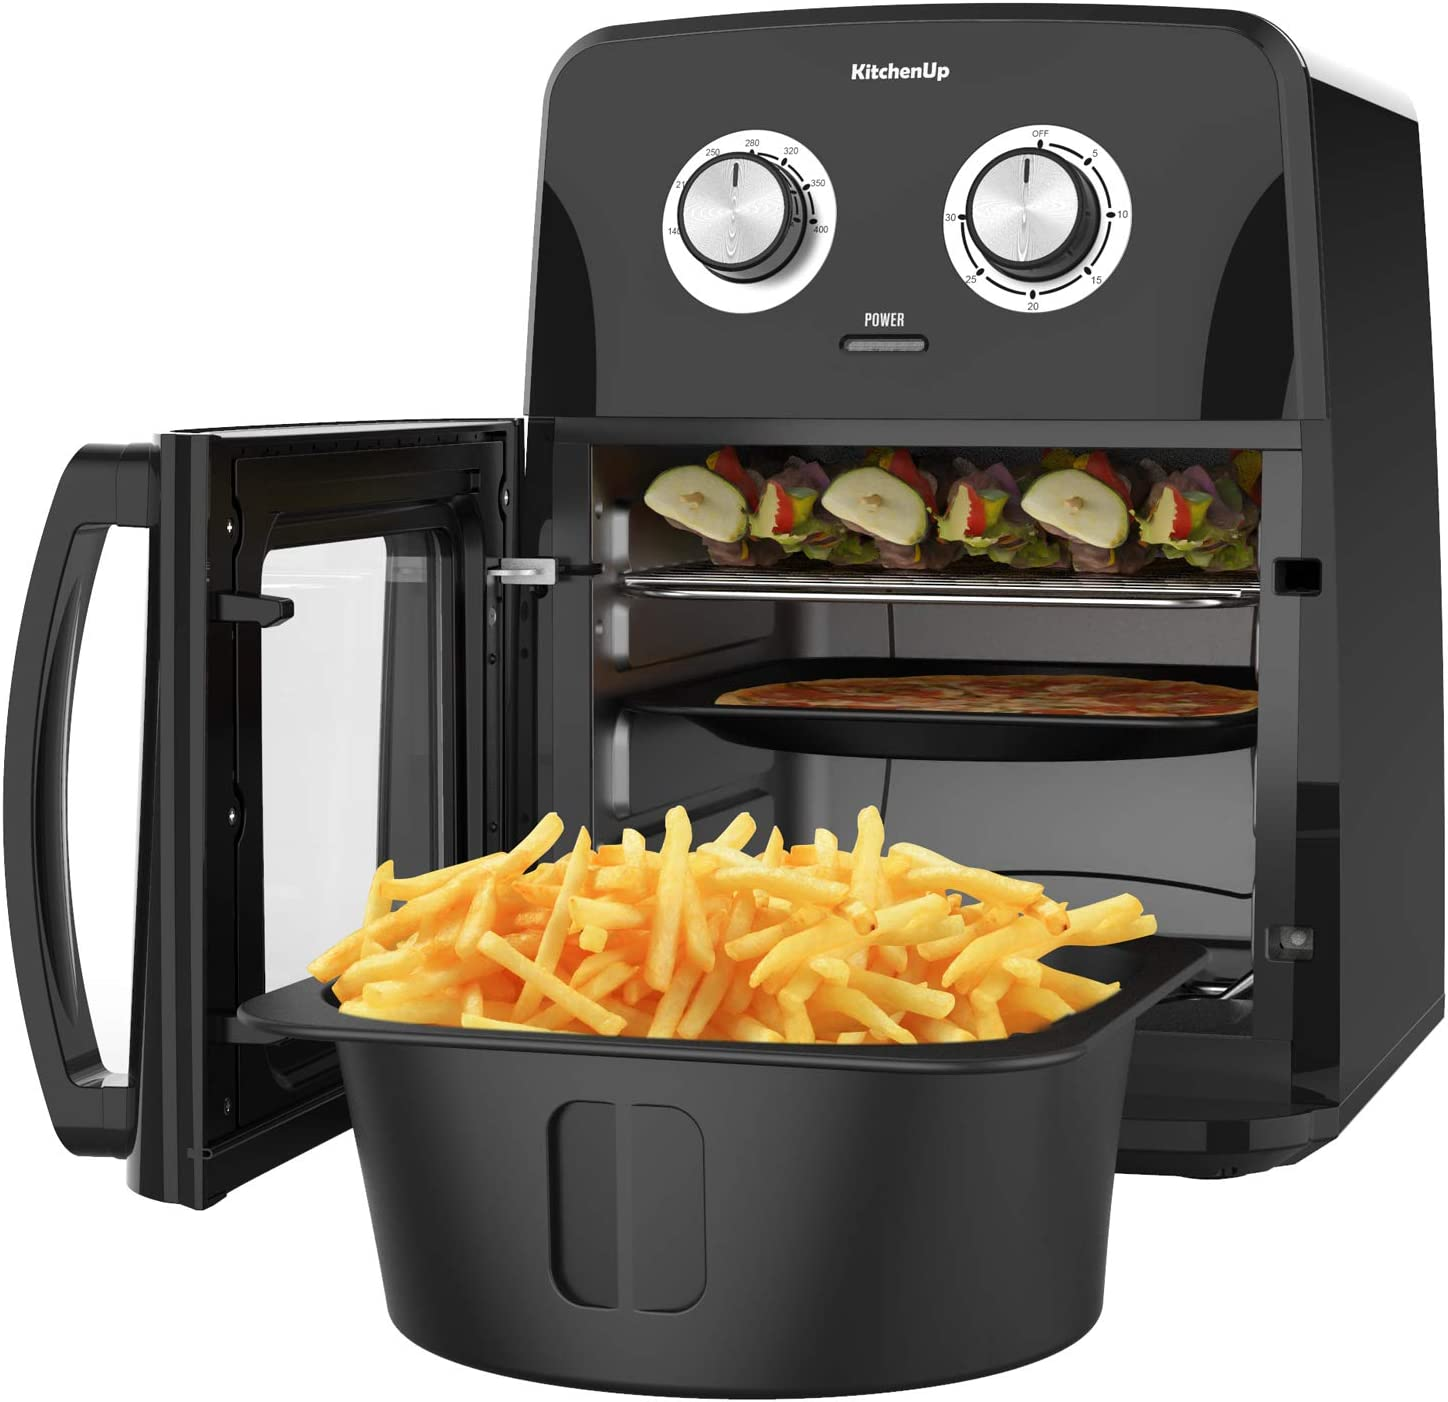 KitchenUp 12 QT Air Fryer Spring new work one after another Hot Auto-Stirring Spring new work 10-in-1 Oven Combo